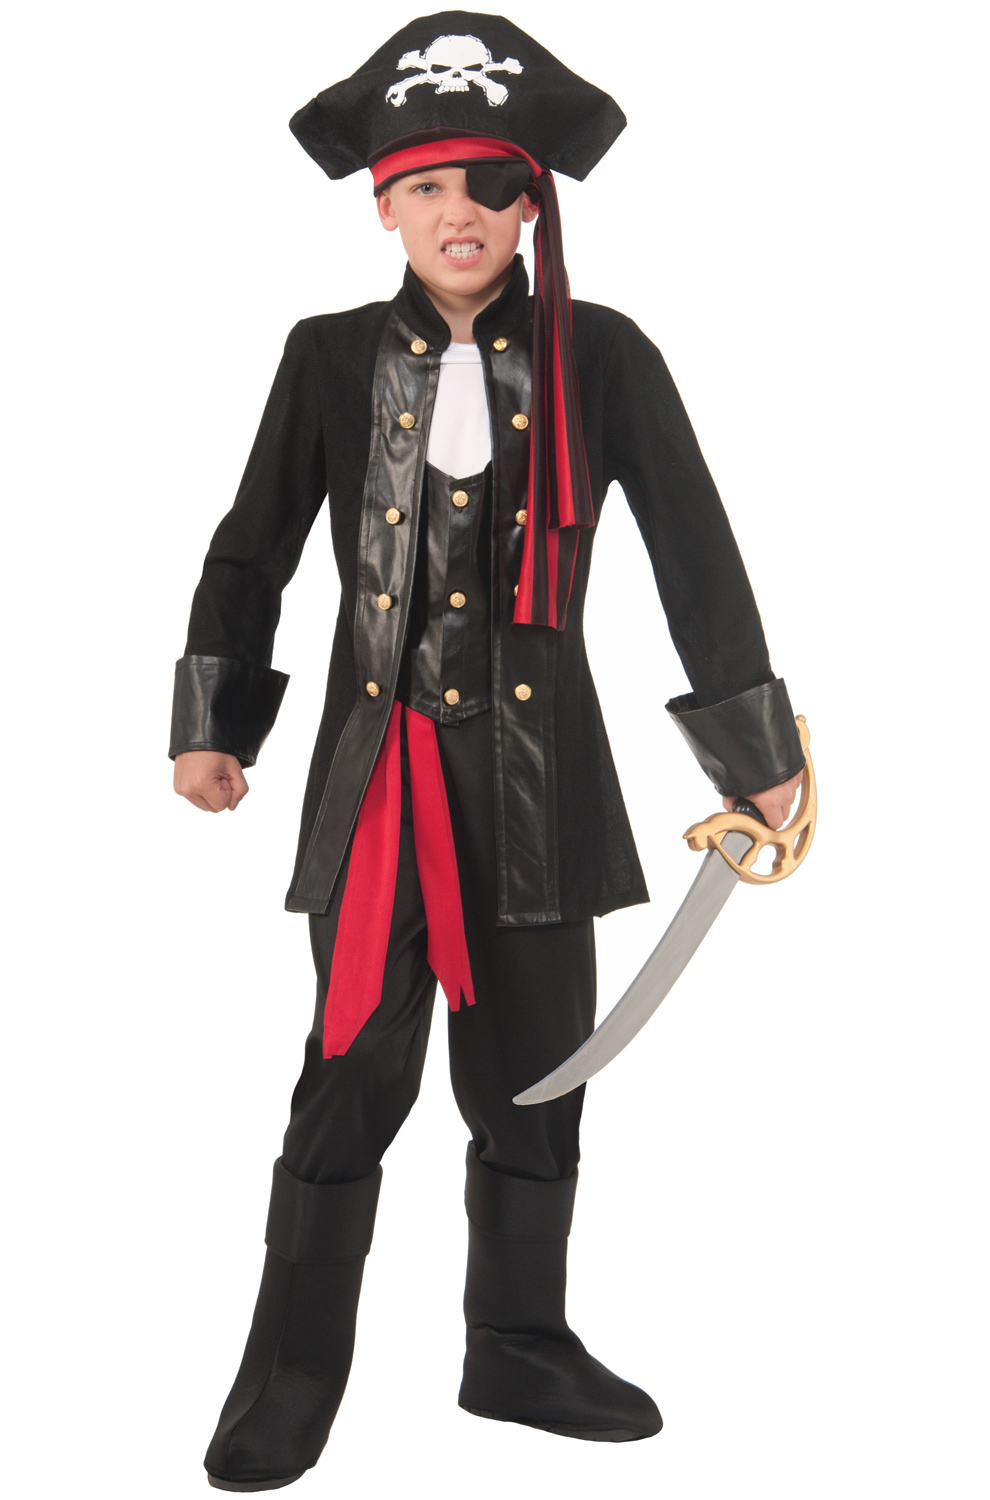 Seven Seas Pirate Child Costume (M) by Forum Novelties